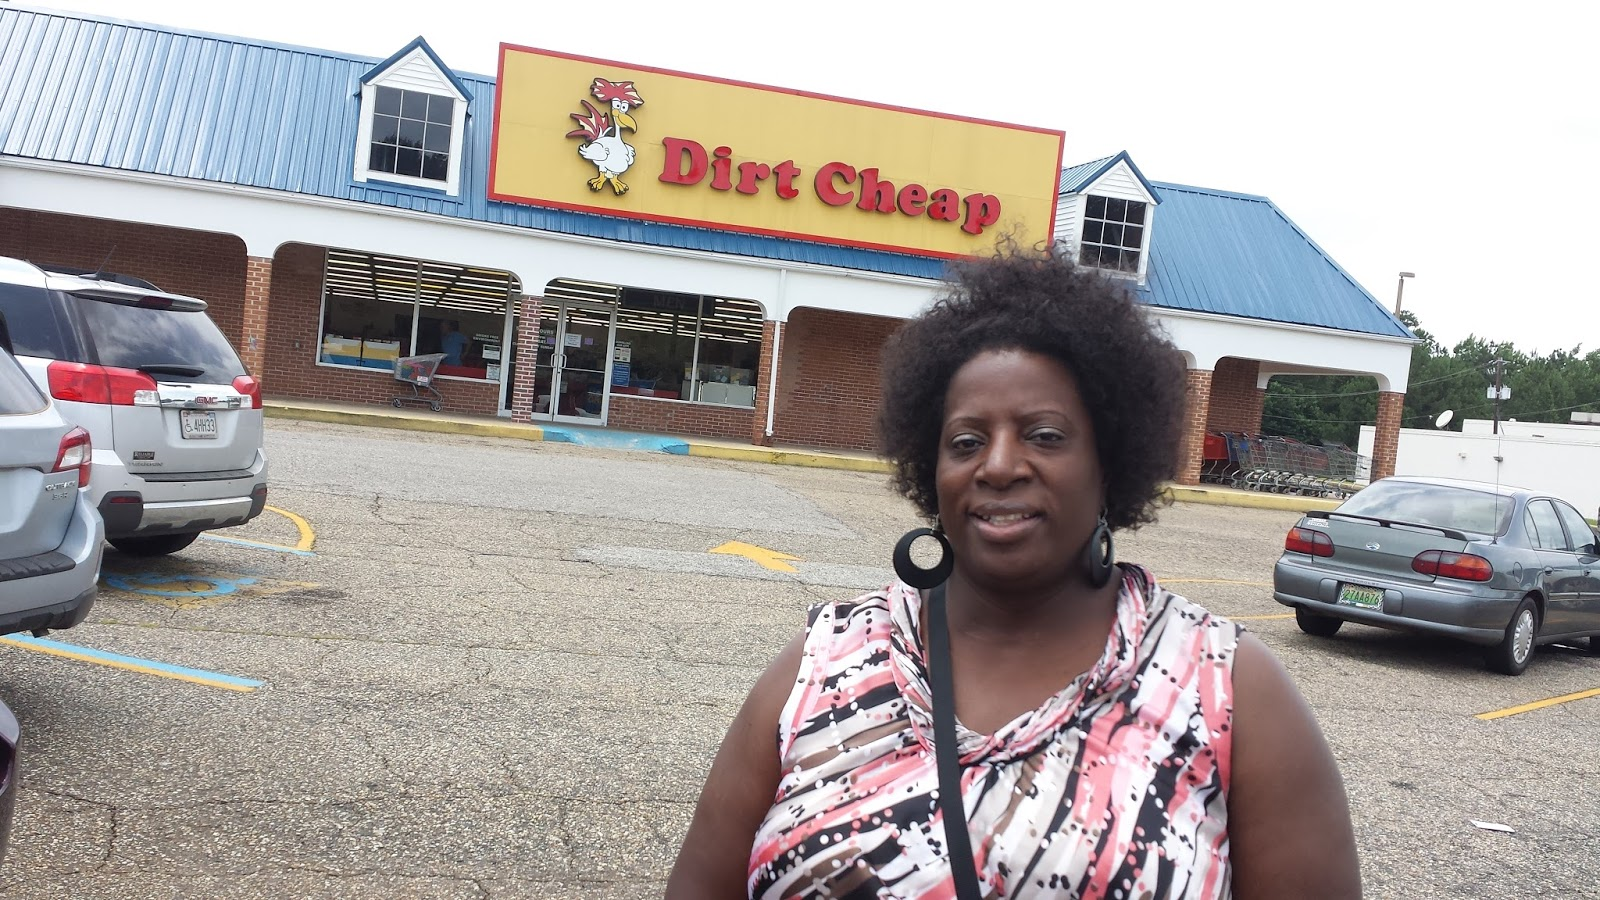 Dirt cheap store locations - There Is Thrifted And The Next Best Thing Which Is A Dirt Cheap Deal That S What I Found At This Store Ingrove Hill Alabama A Few Weeks Ago